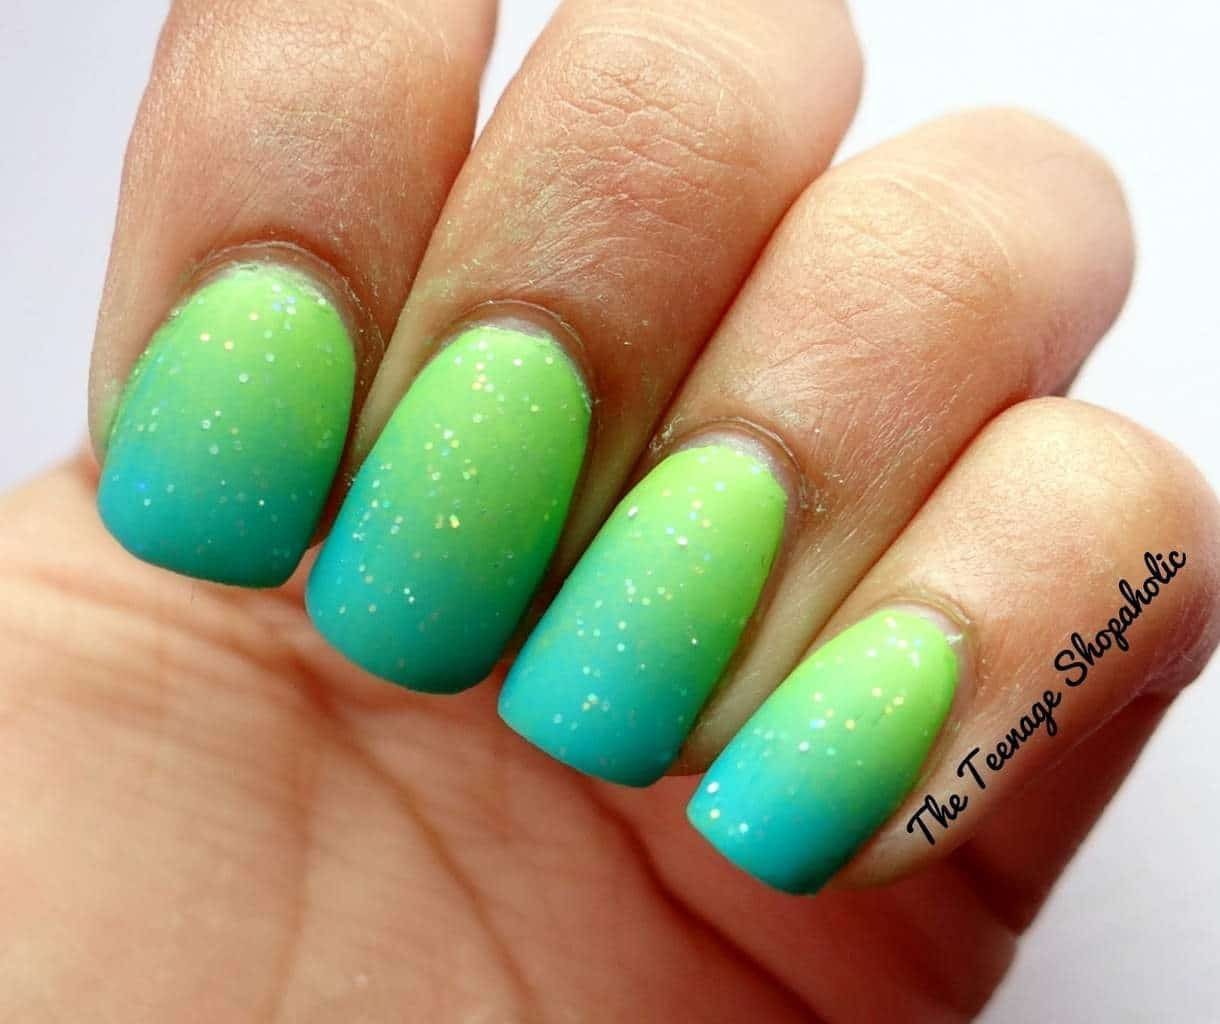 Awesome Light Green Nails Image - Nail Art Ideas - morihati.com